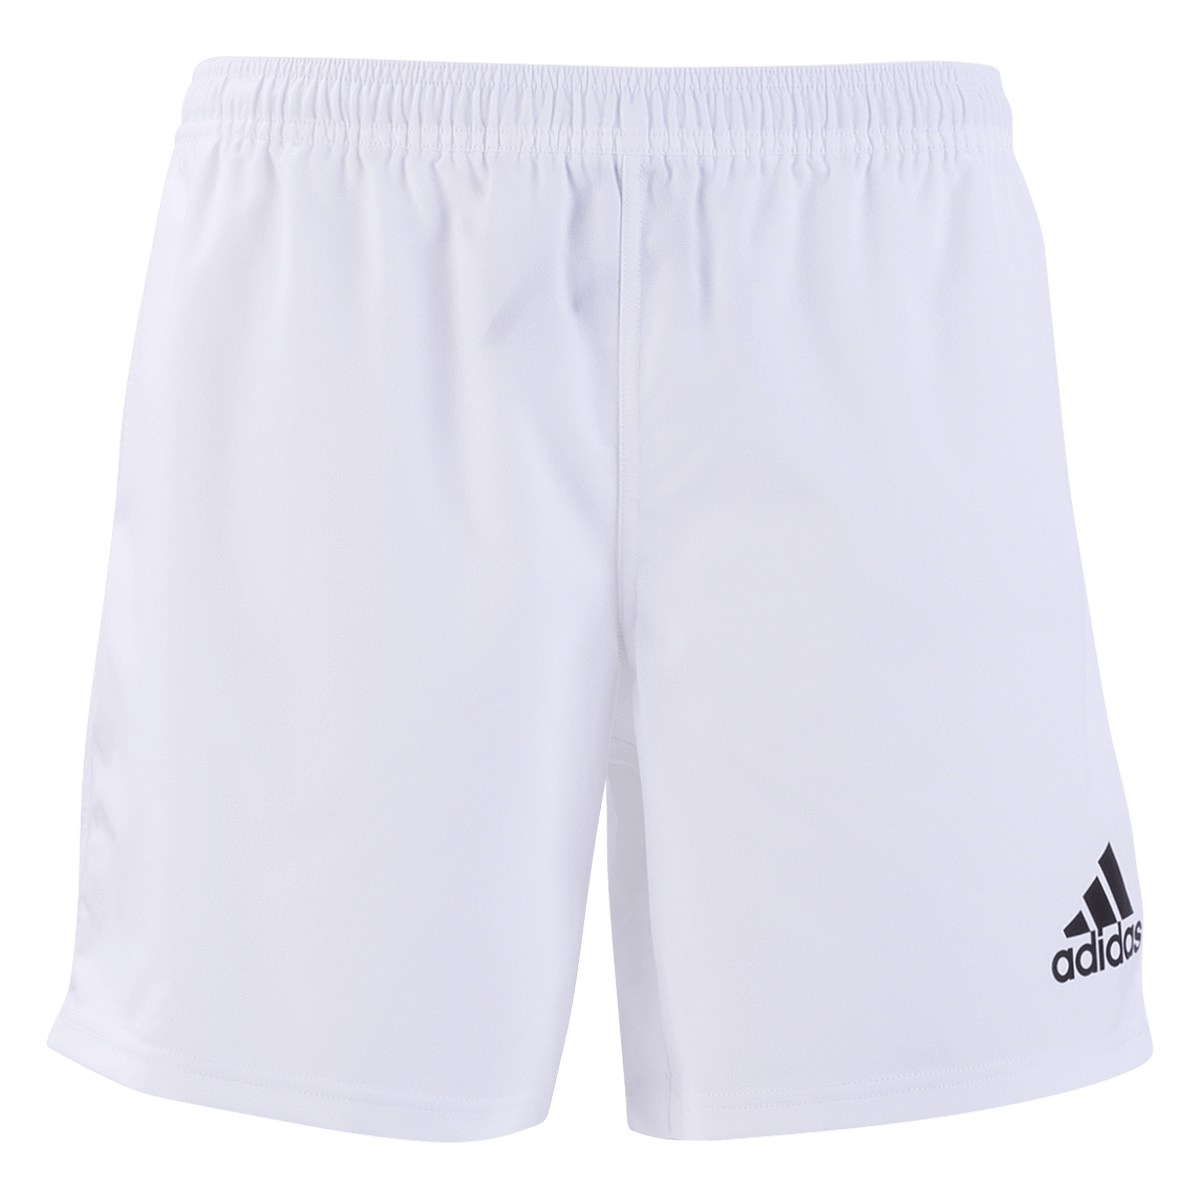 Adidas 19 White/Black 3 Stripe Rugby Shorts Front View